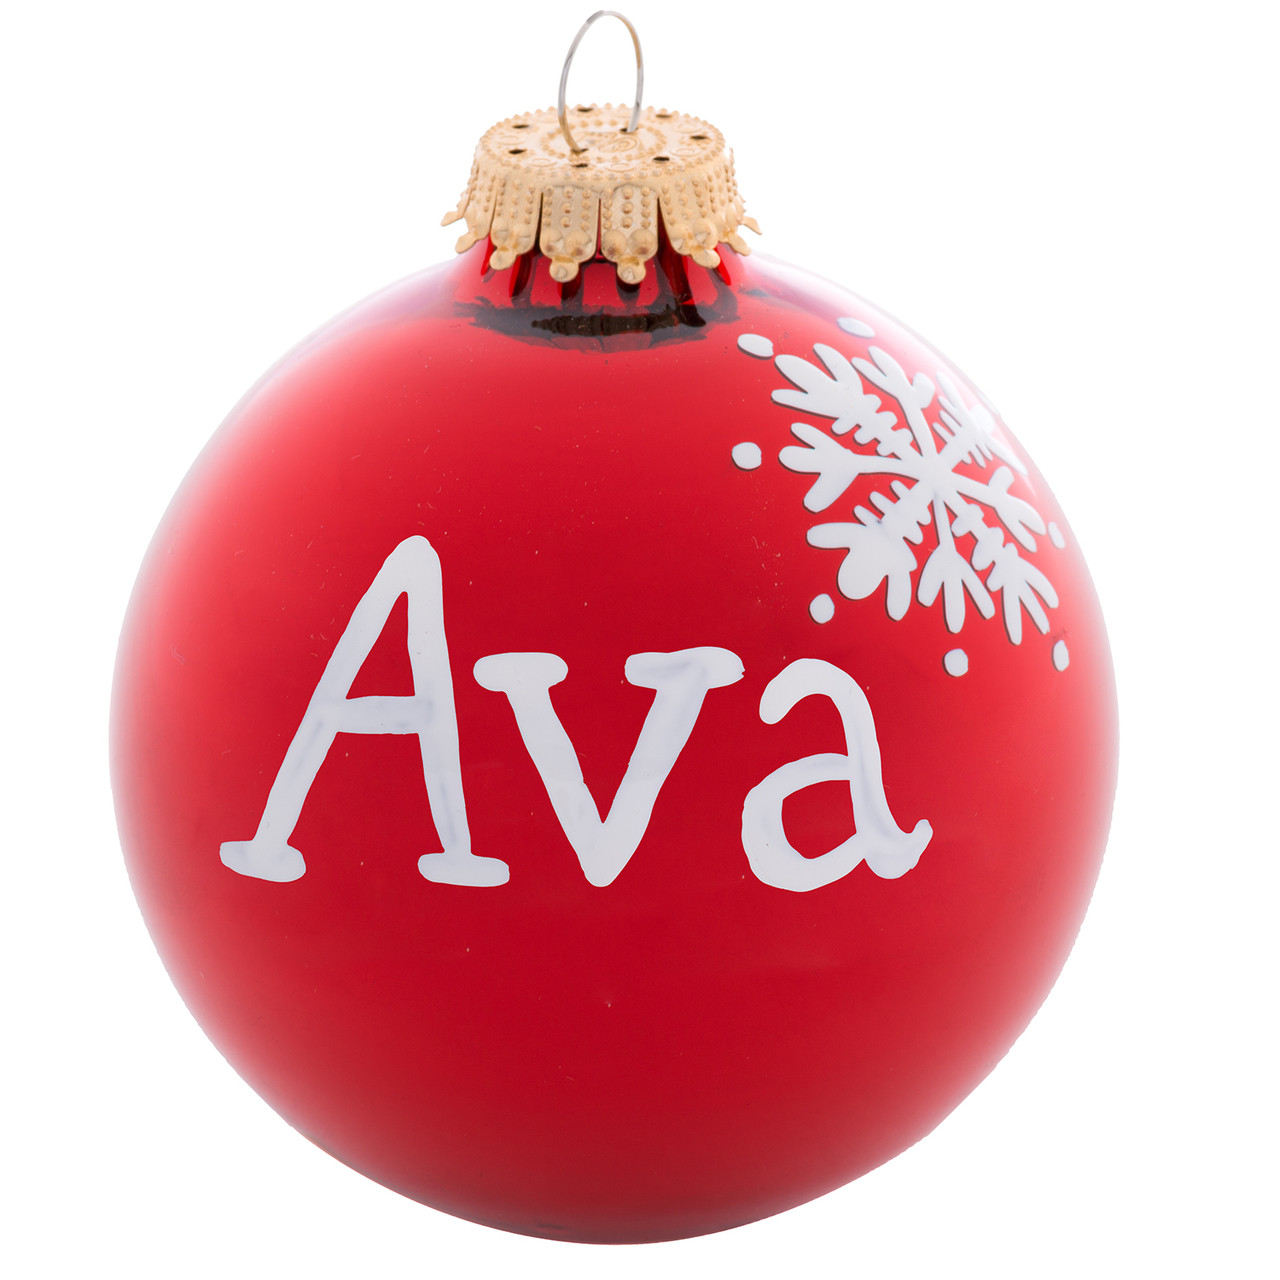 Personalized Christmas Name Ball Ornaments